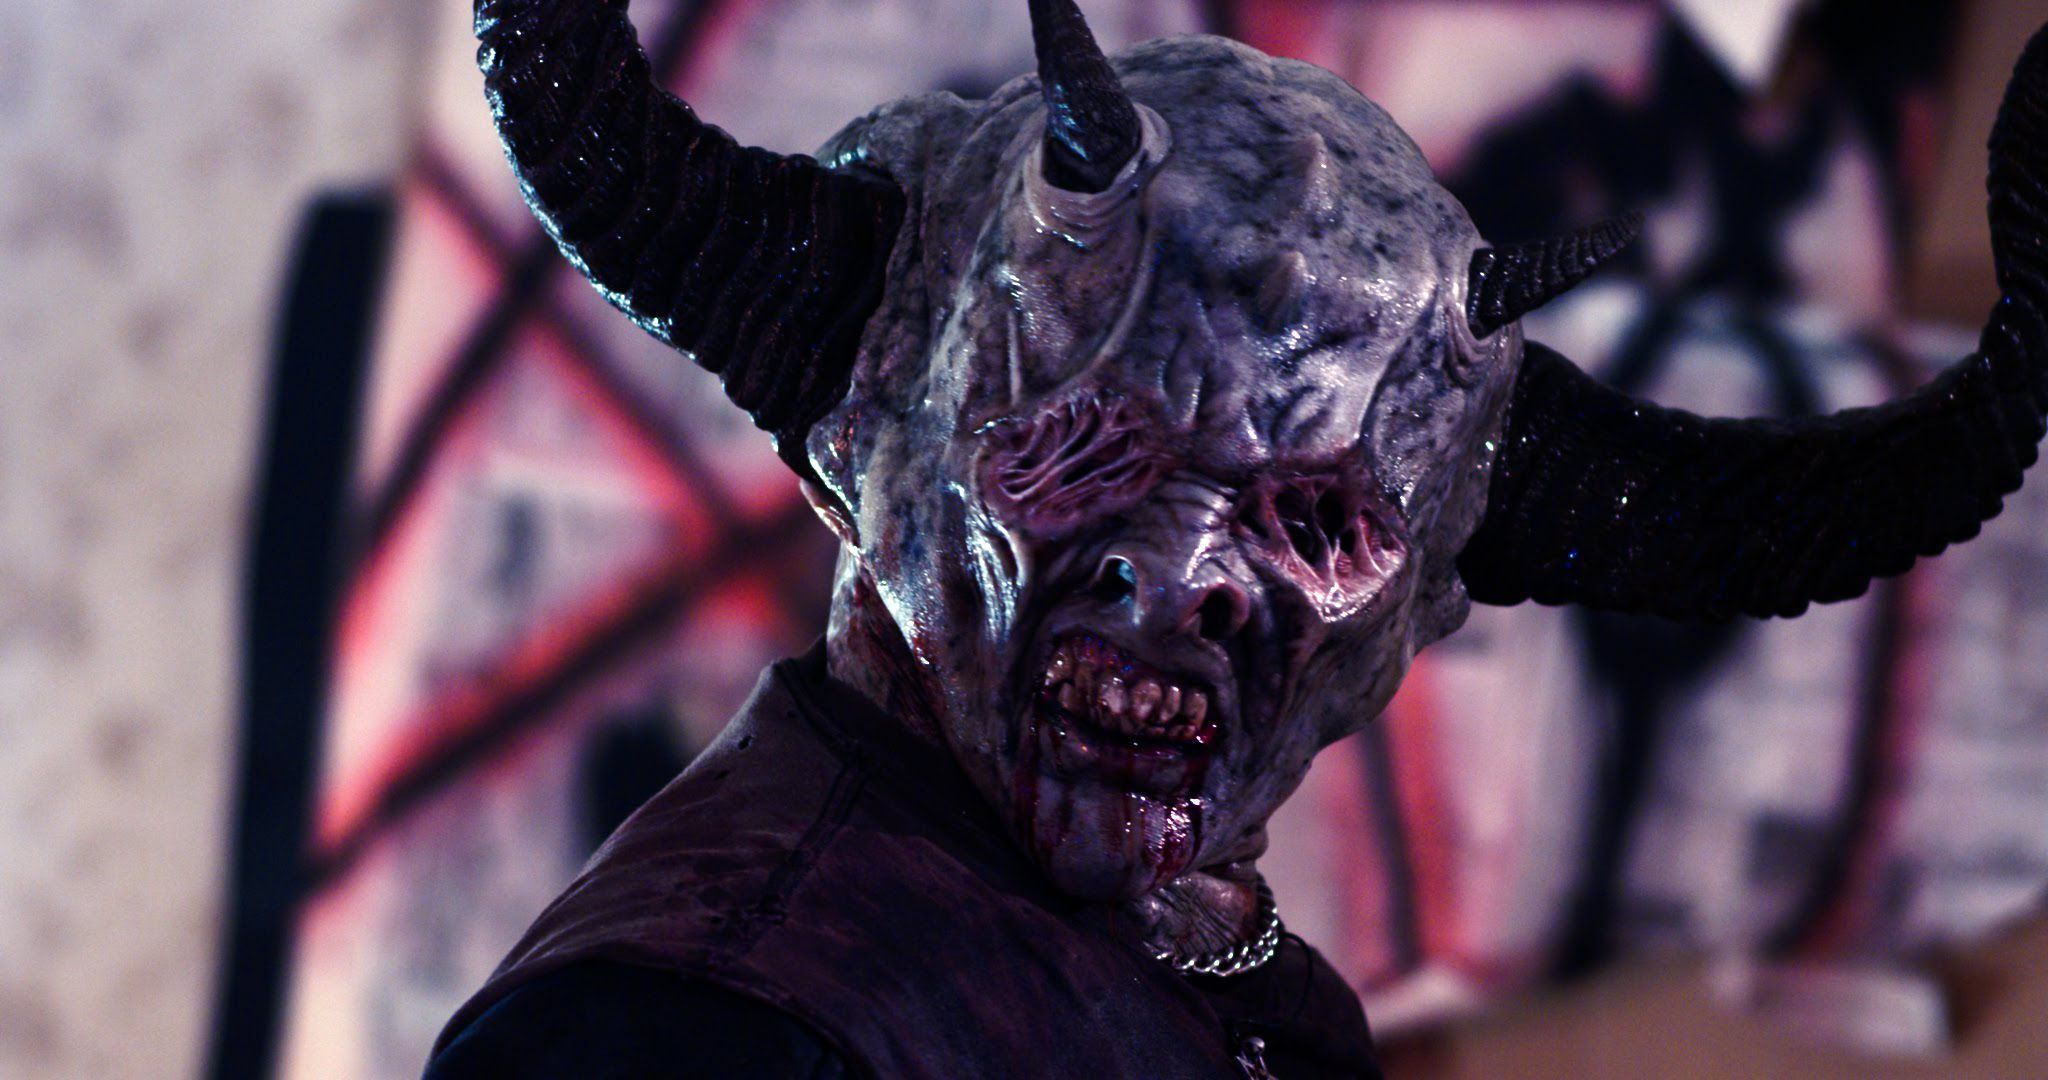 Deathgasm - Demon